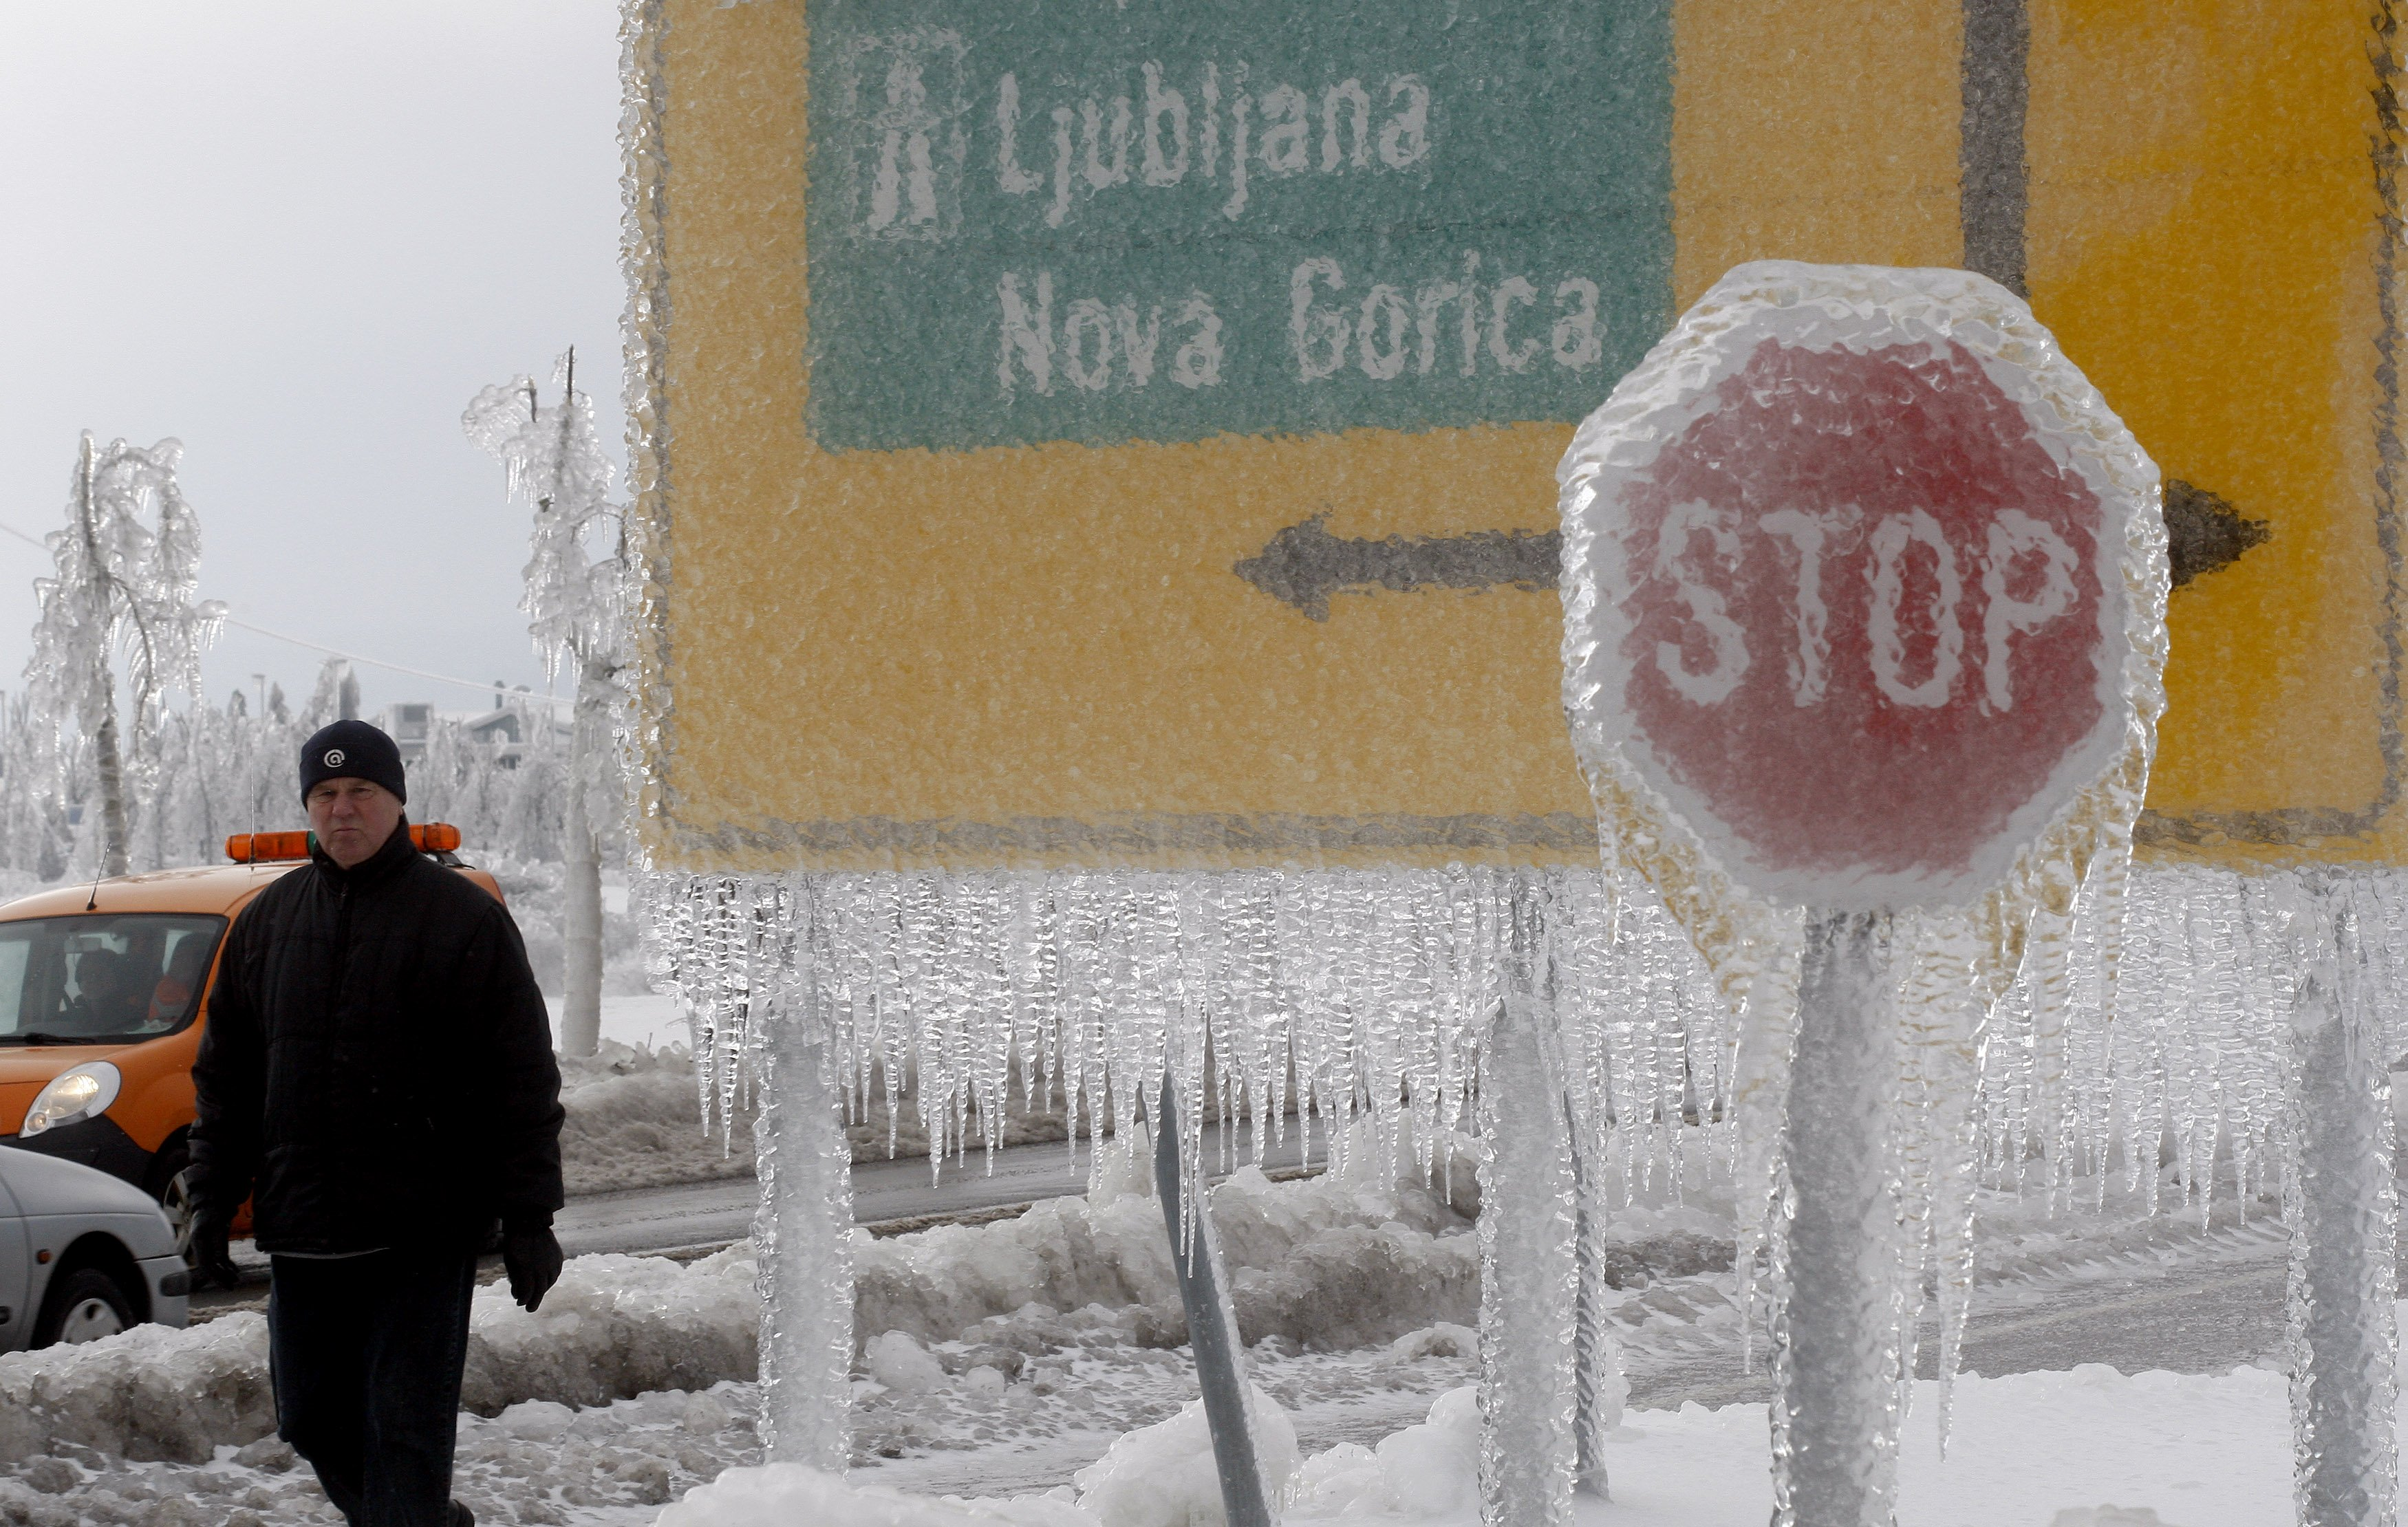 Road signs coated in a thick layer of ice.